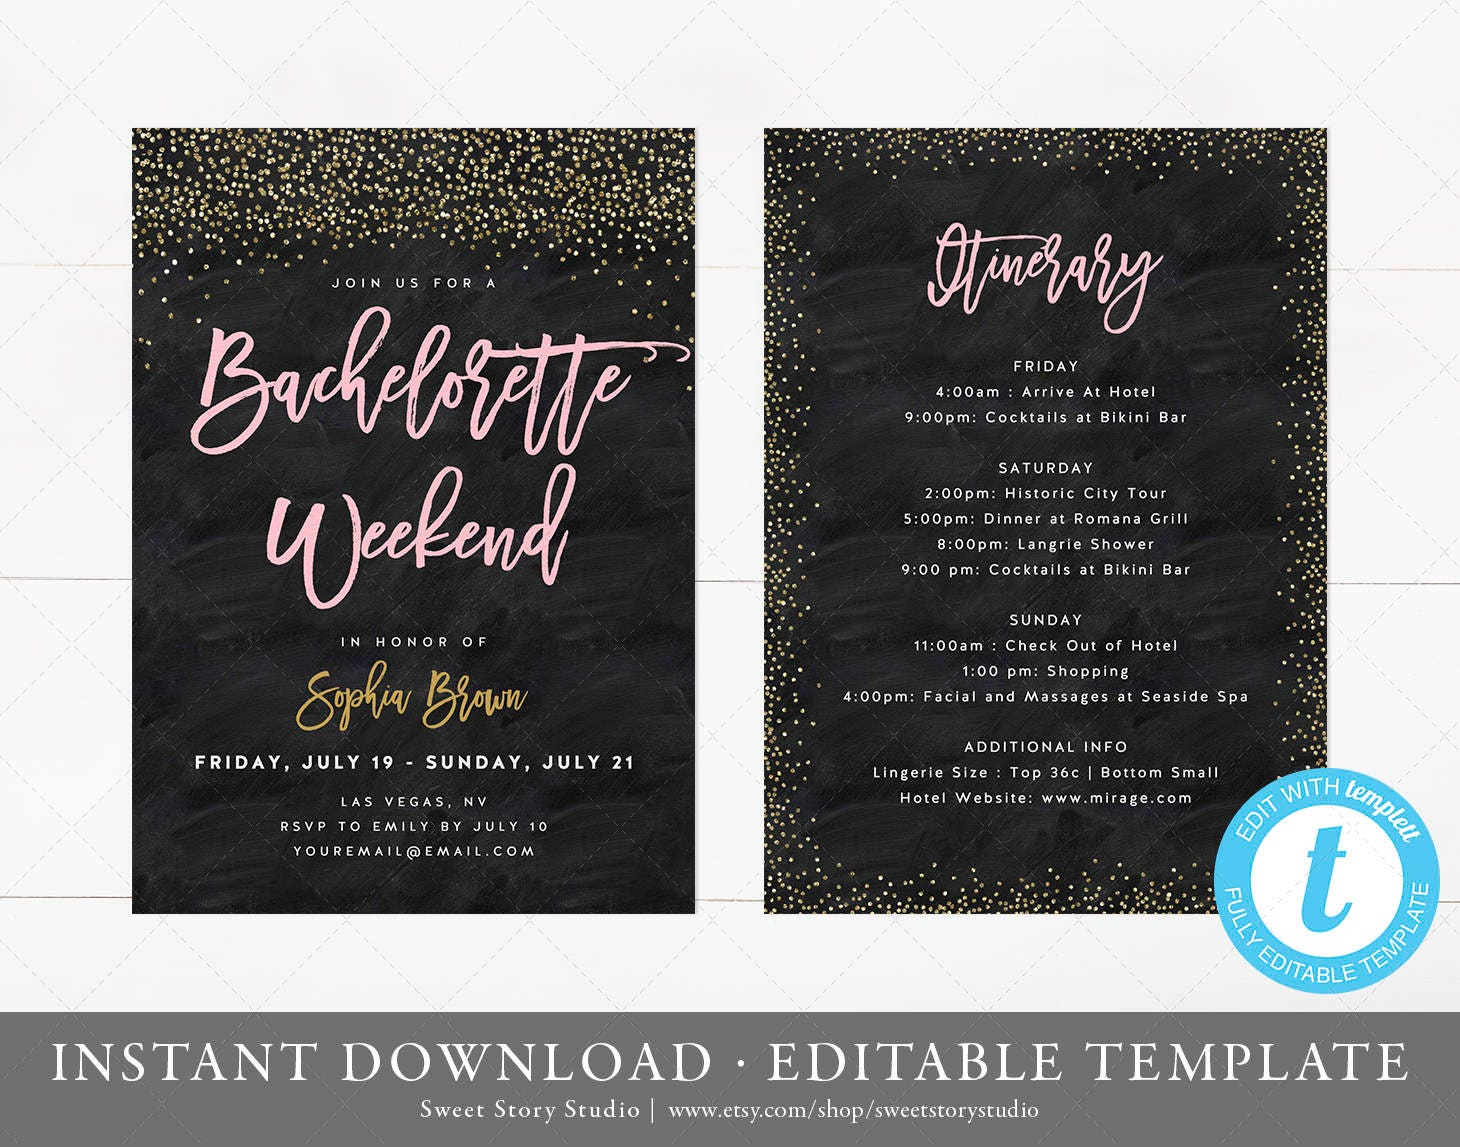 Bachelorette Weekend Invitation And Itinerary Card Instant Etsy